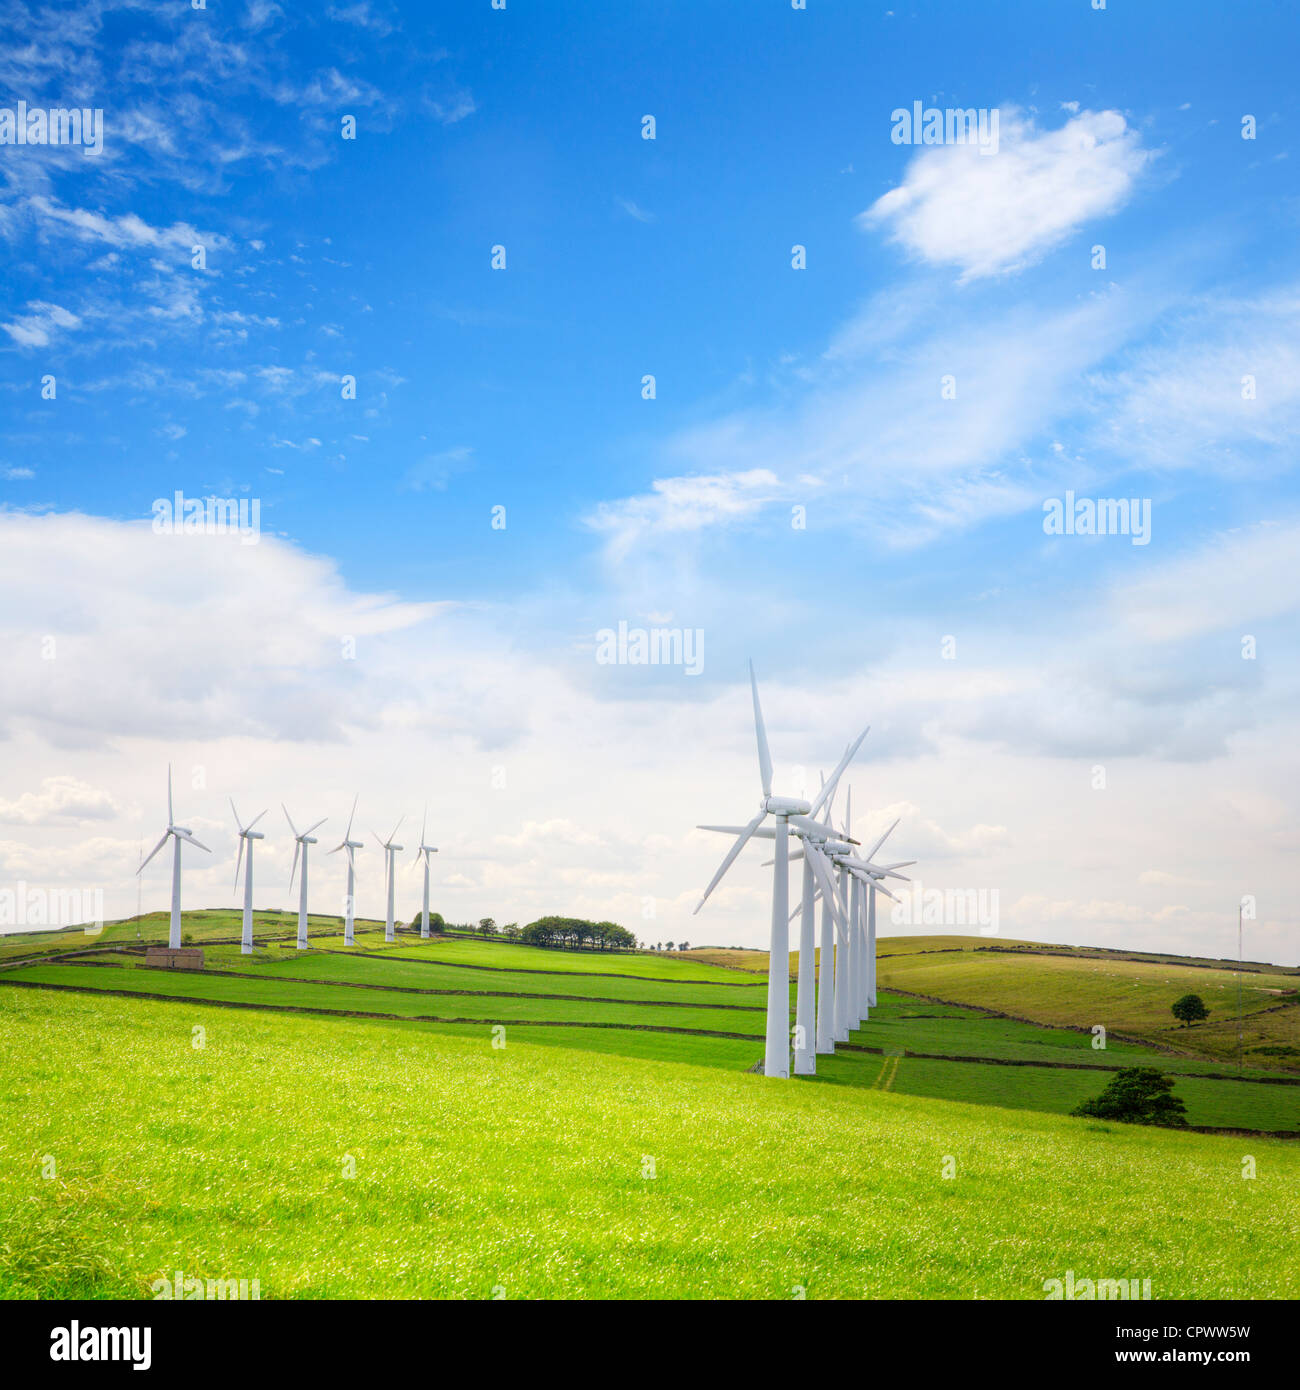 Double row of wind turbines at Royd Moor wind farm, Penistone, Yorkshire. - Stock Image